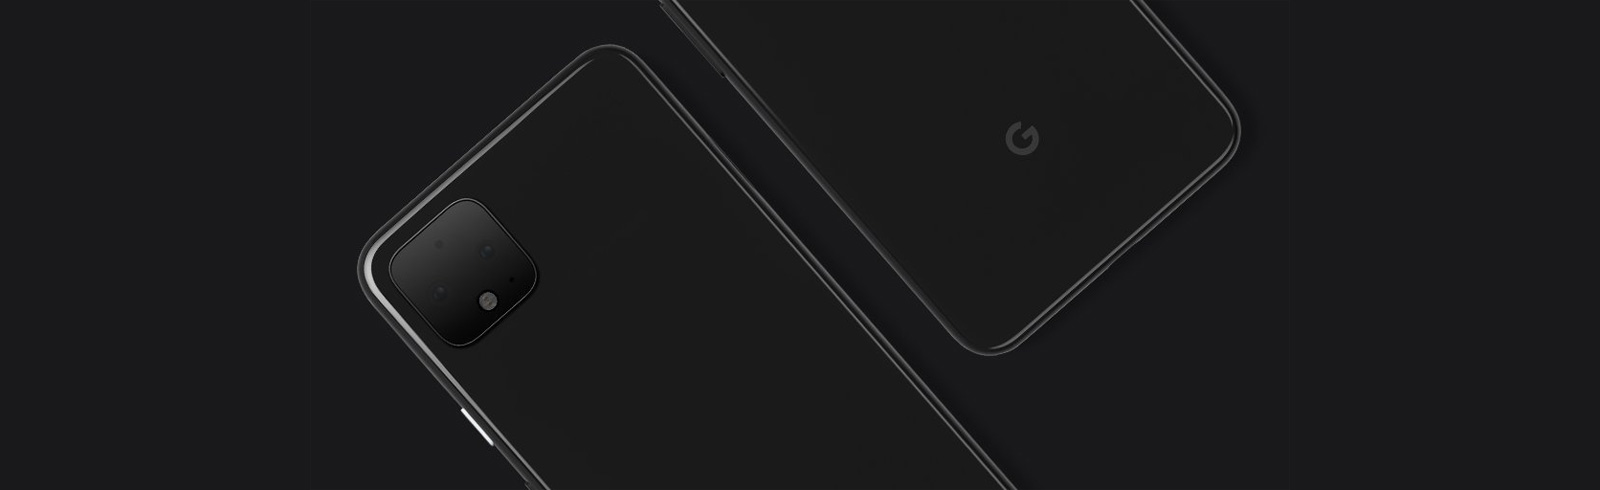 Google Pixel 4 and Pixel 4 XL will arrive with Pixel Neural Core for image processing